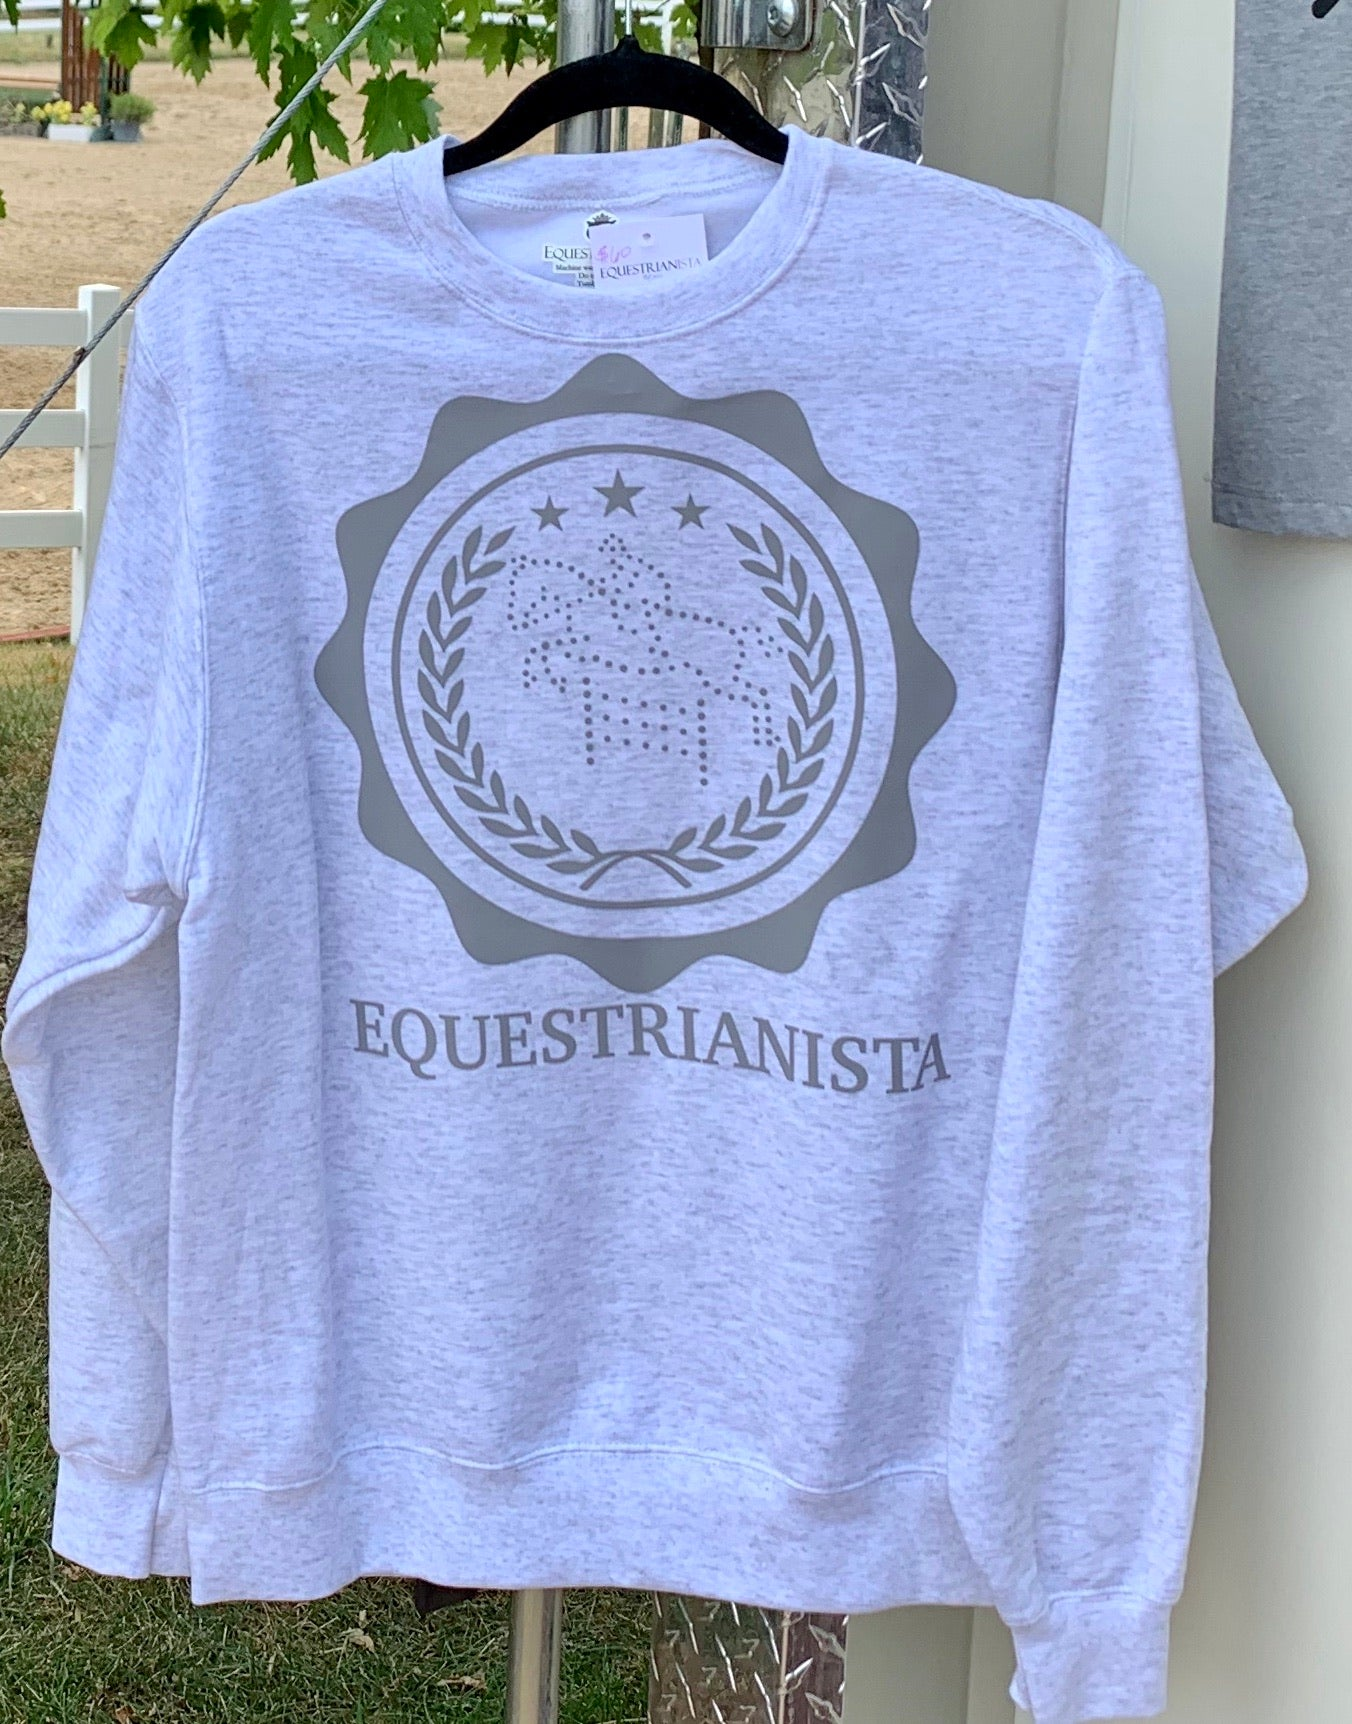 Equestrian Riding Boot T-shirt in Black by Equestrianista.